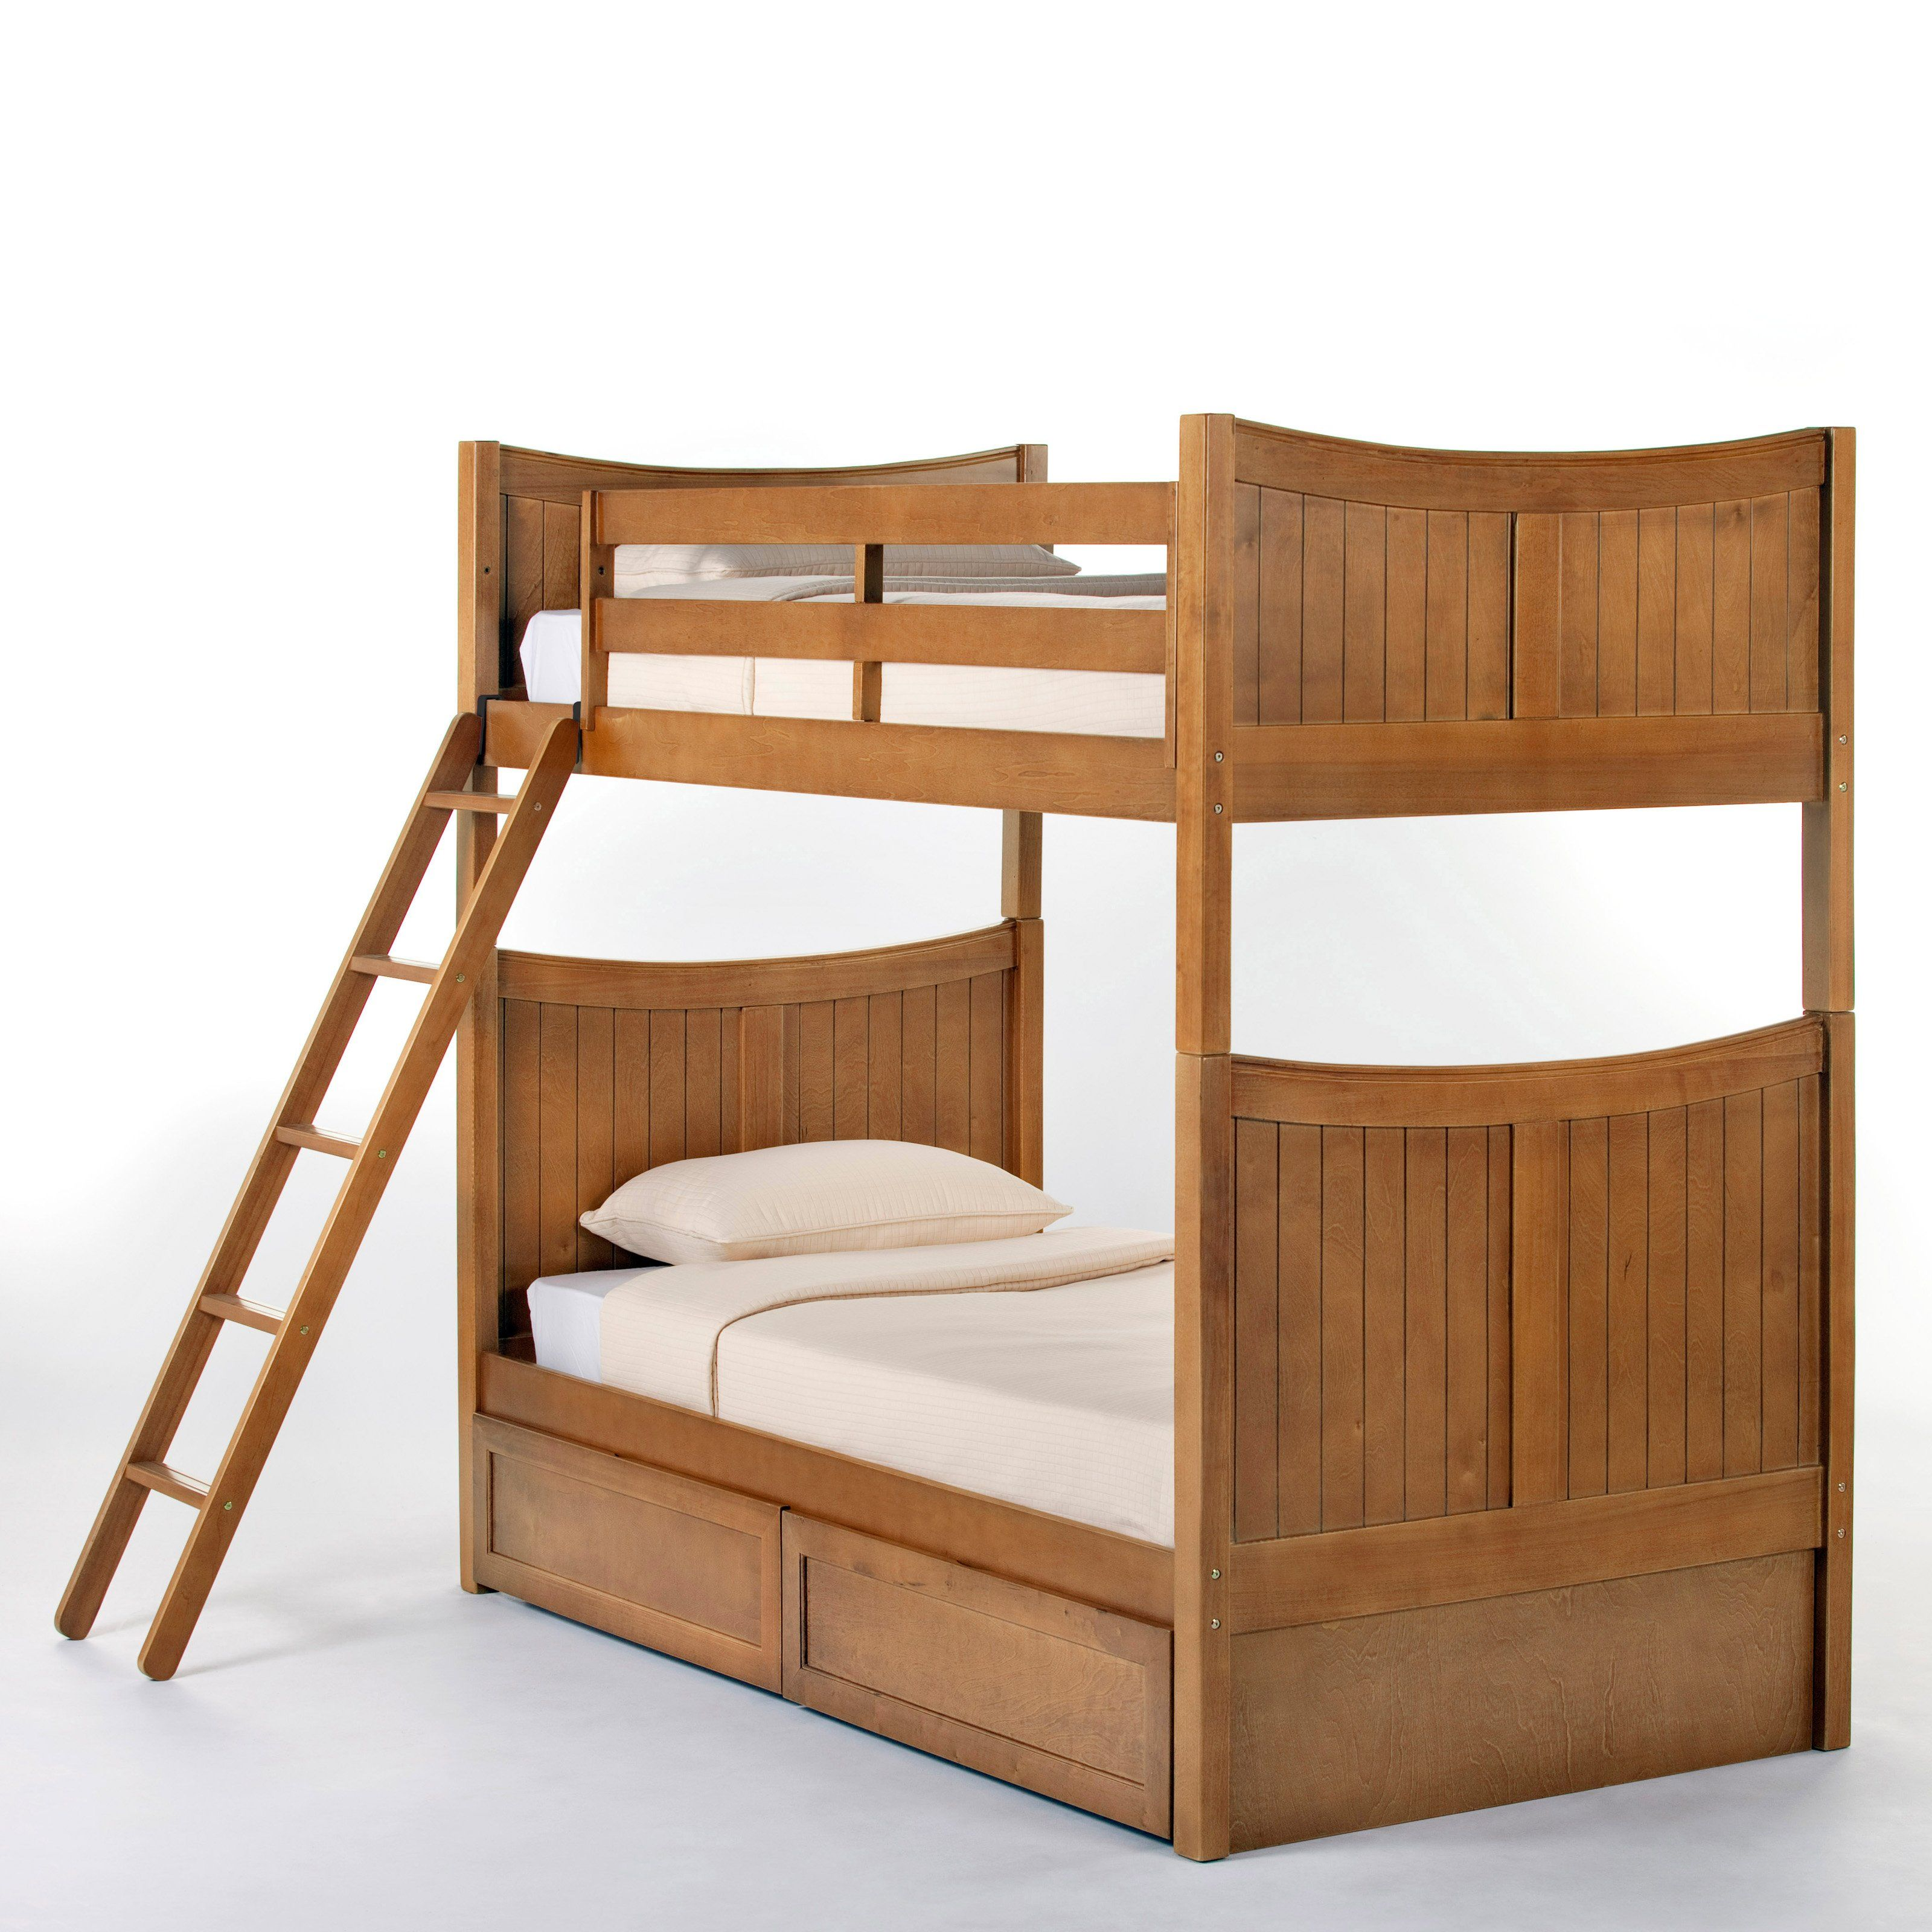 Twin loft bed ideas  Have to have it Schoolhouse Taylor Twin over Twin Bunk Bed  Pecan